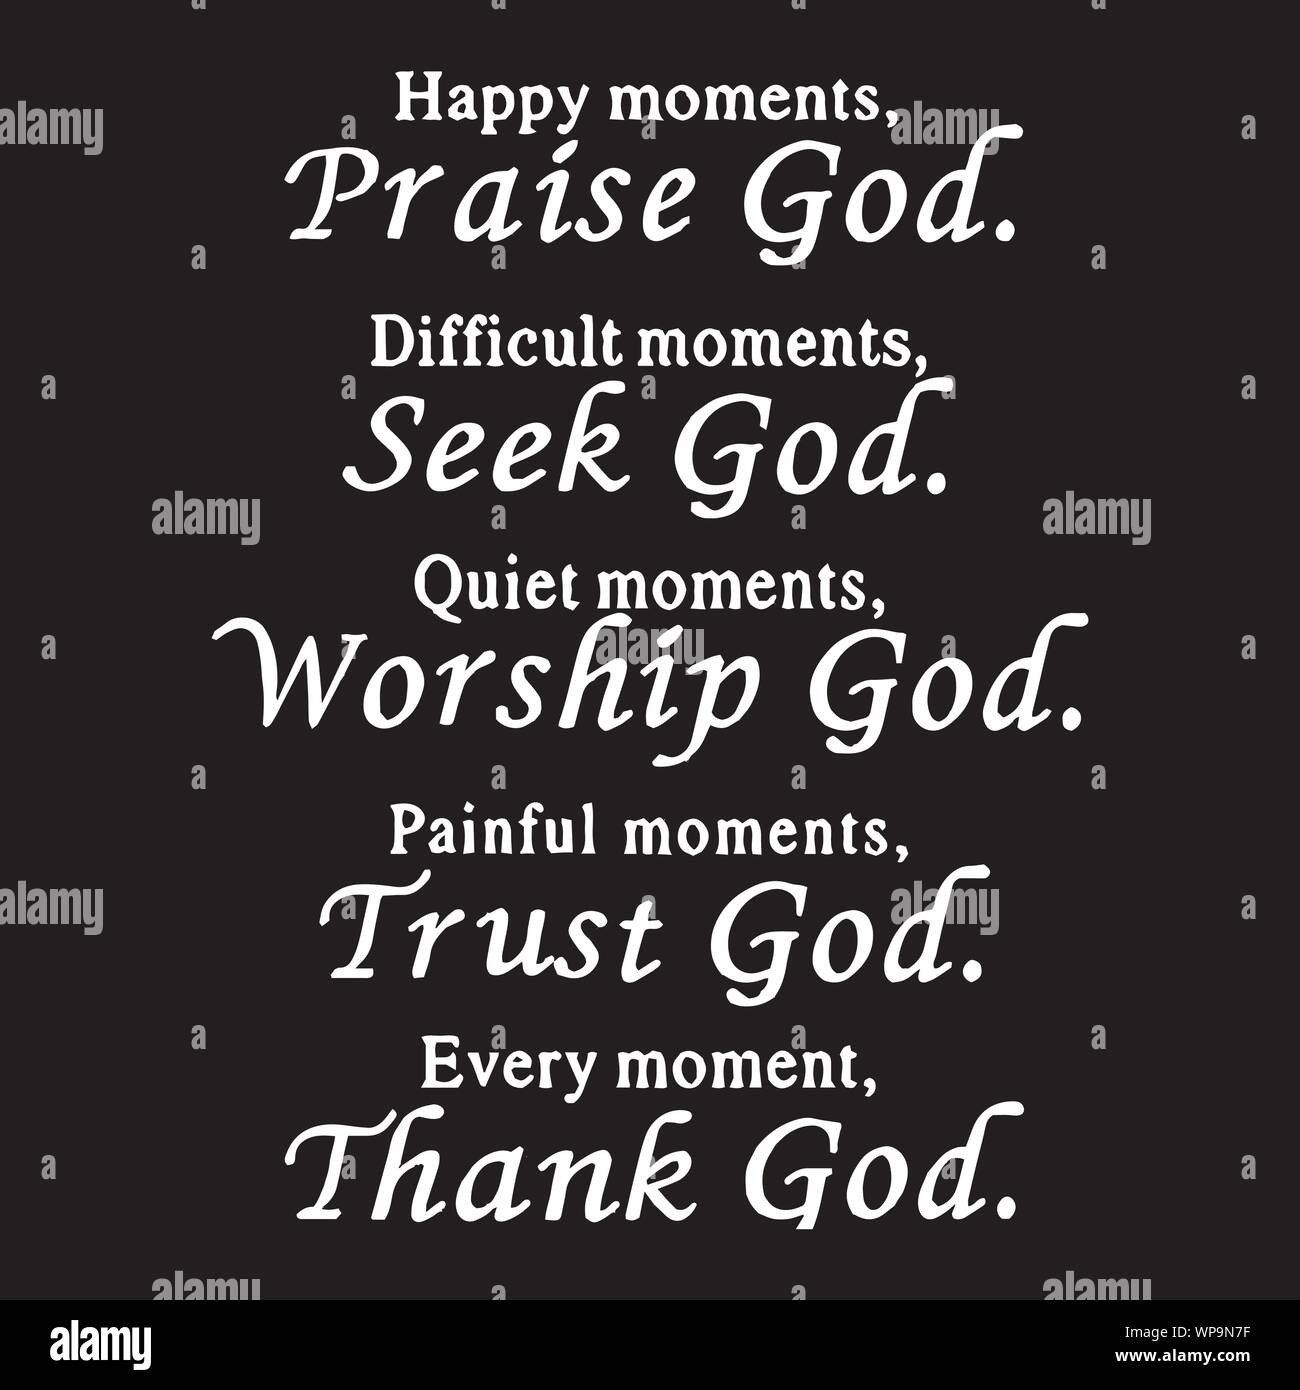 Happy Moments Praise God Inspirational Quotes And Motivational